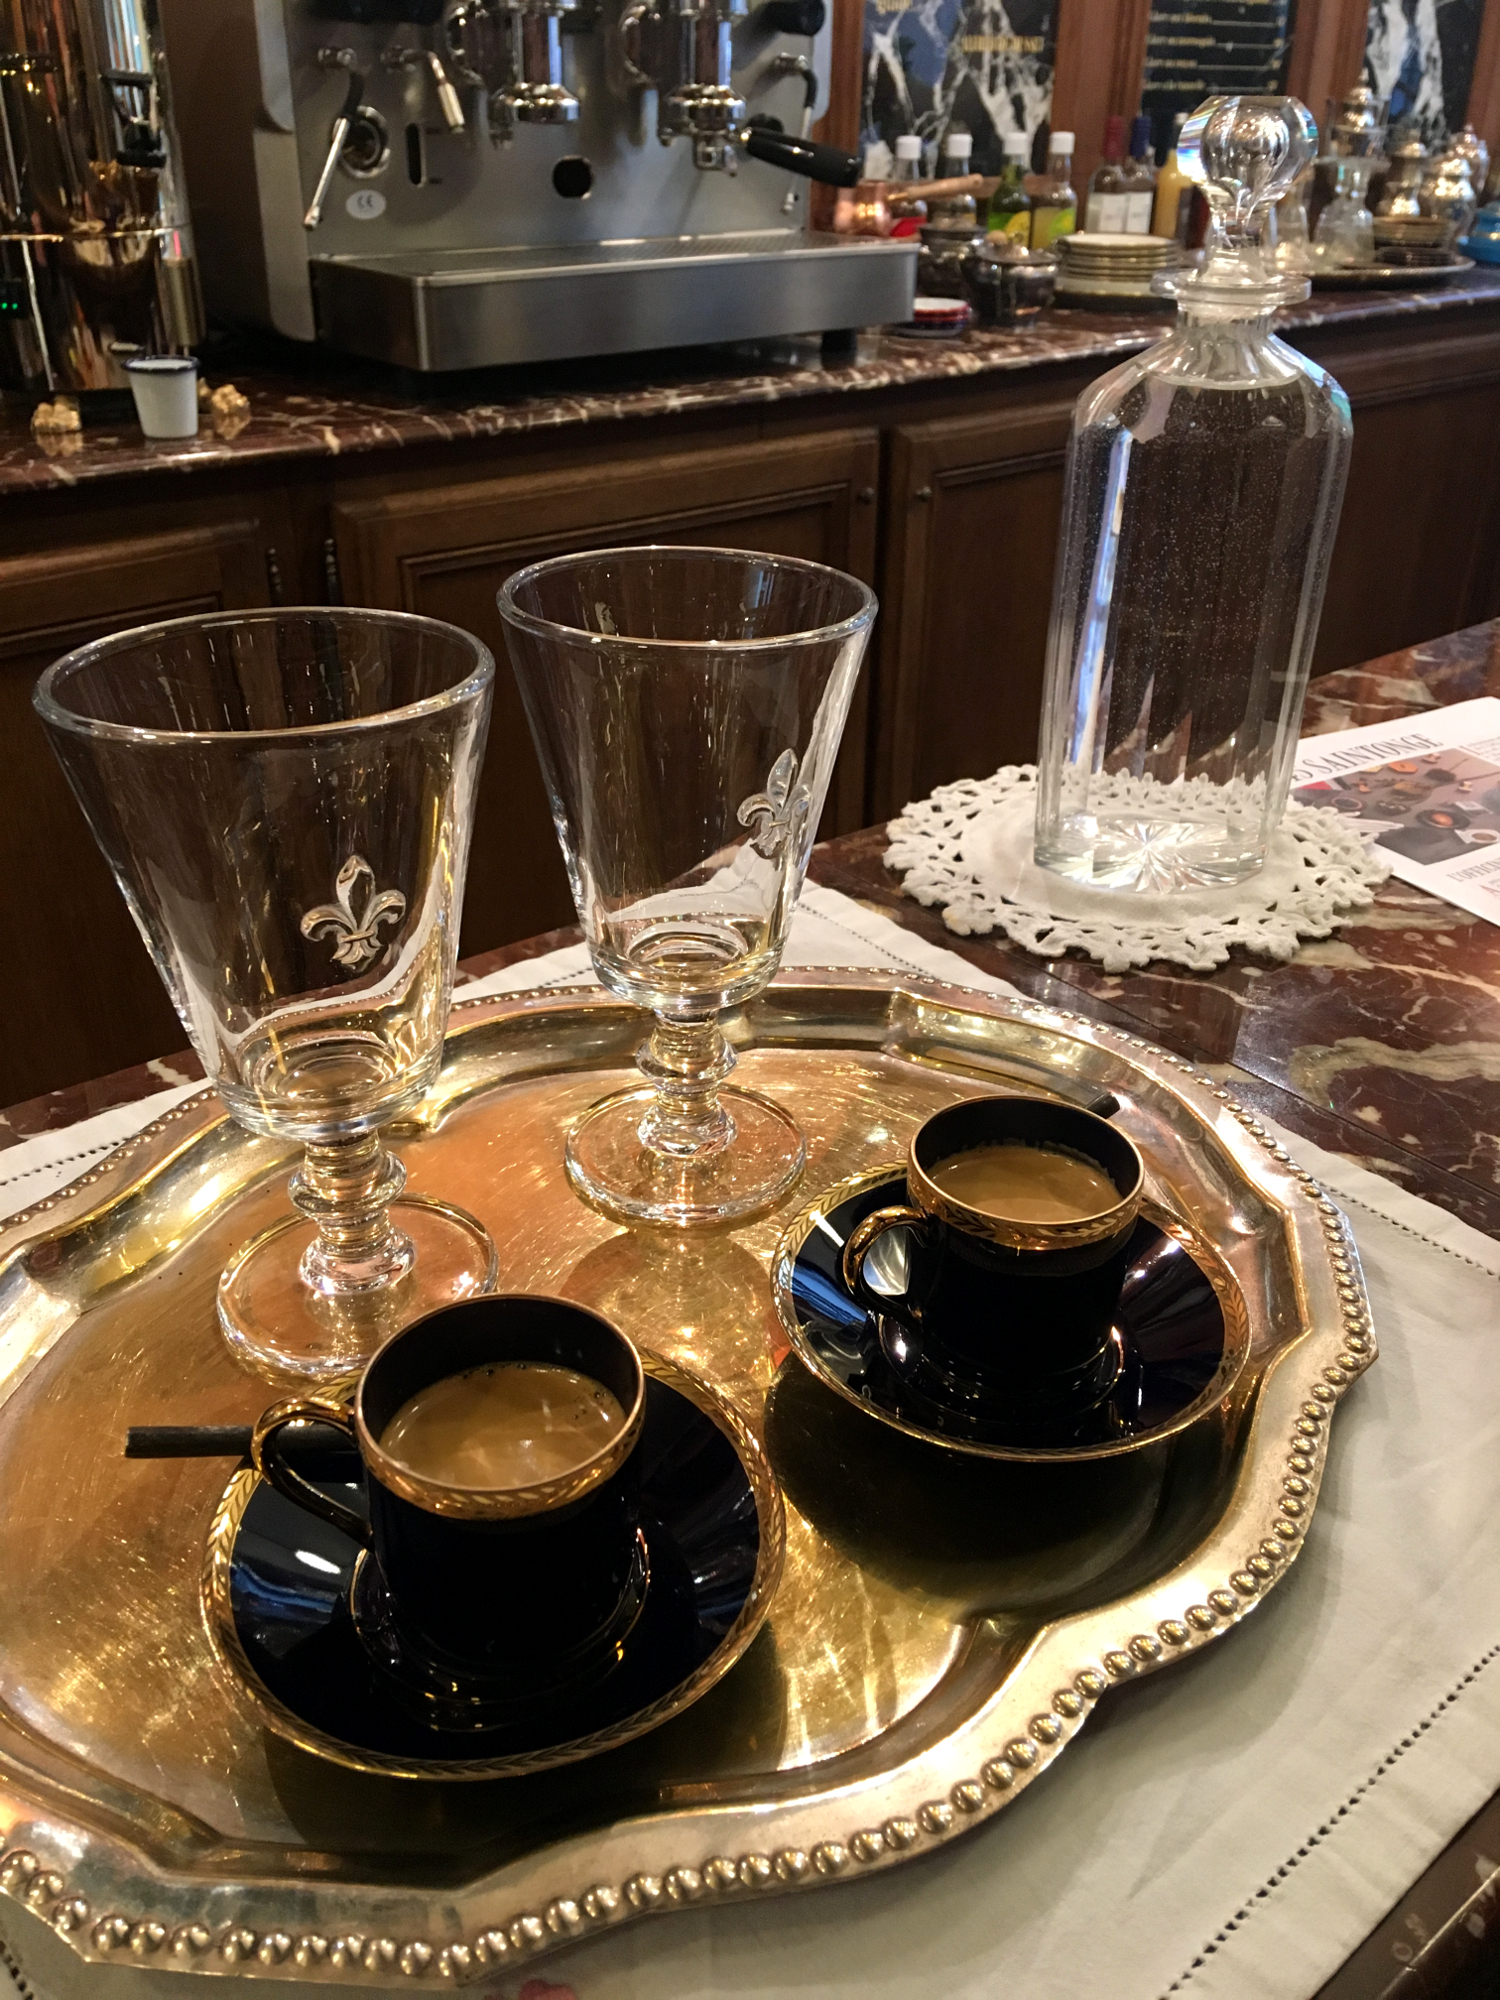 rocaille-blog-paris-buly-1803-marais-grand-cafe-tortoni-13